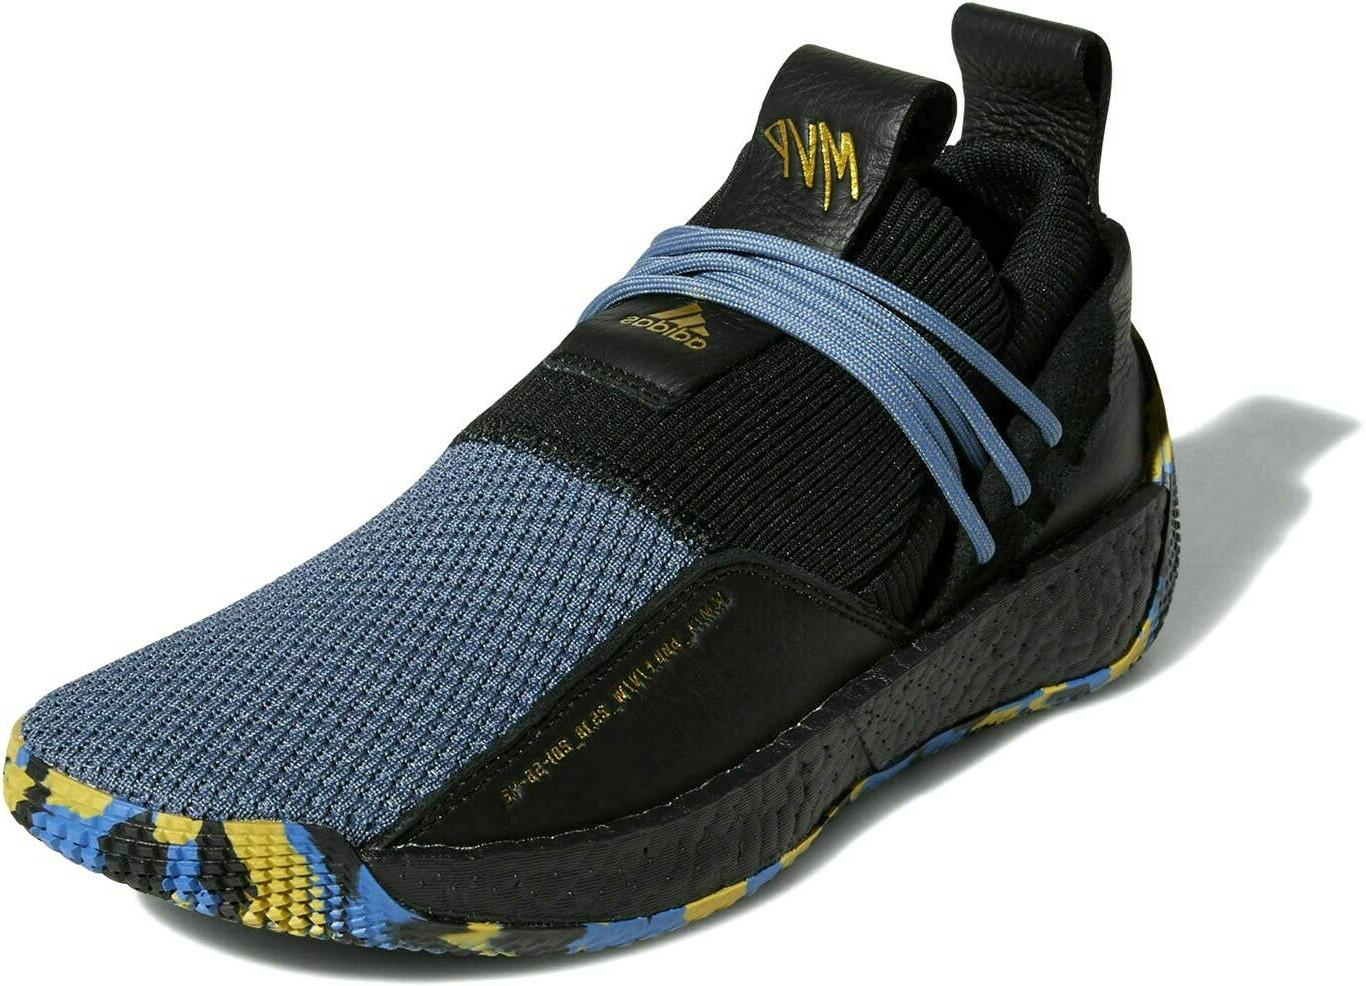 Adidas James Harden 2 LS Shoes F36840